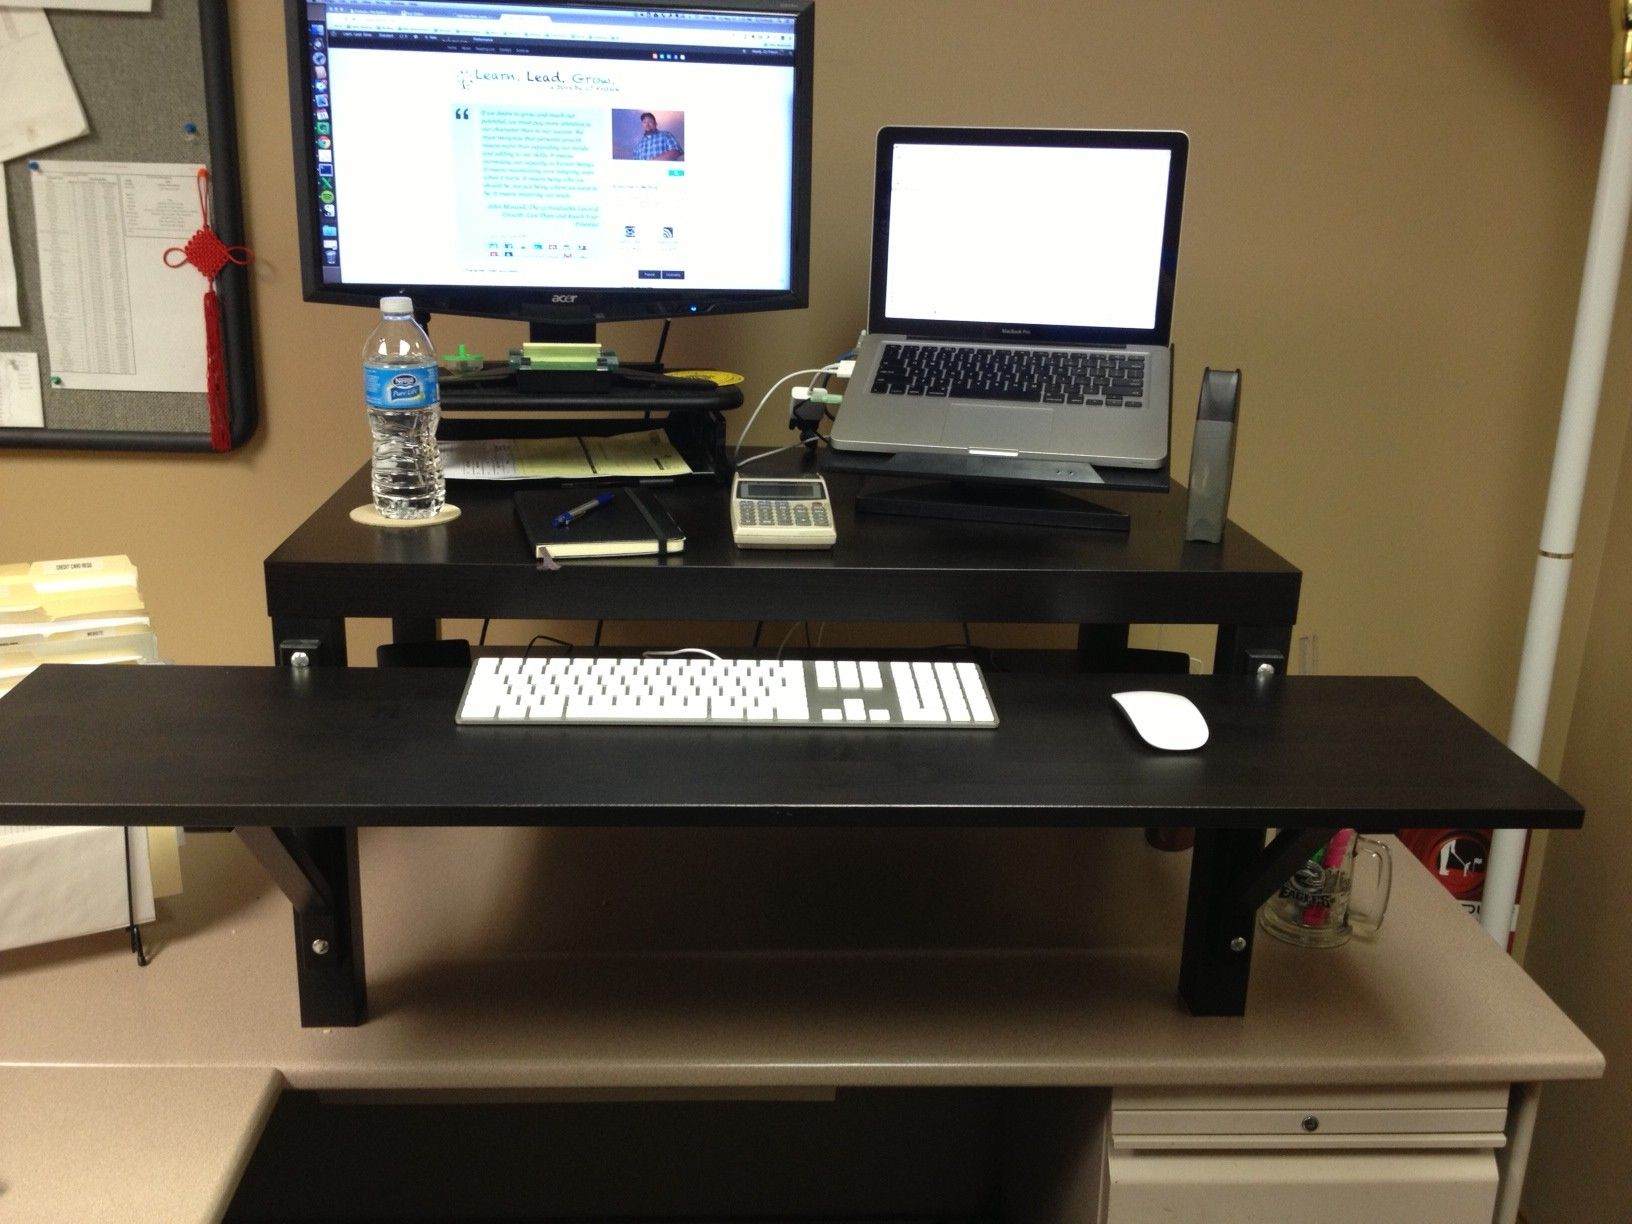 Stand Up Desk Ikea Everybody Stand Up My Take On The Ikea Hack Stand Up Desk Cool